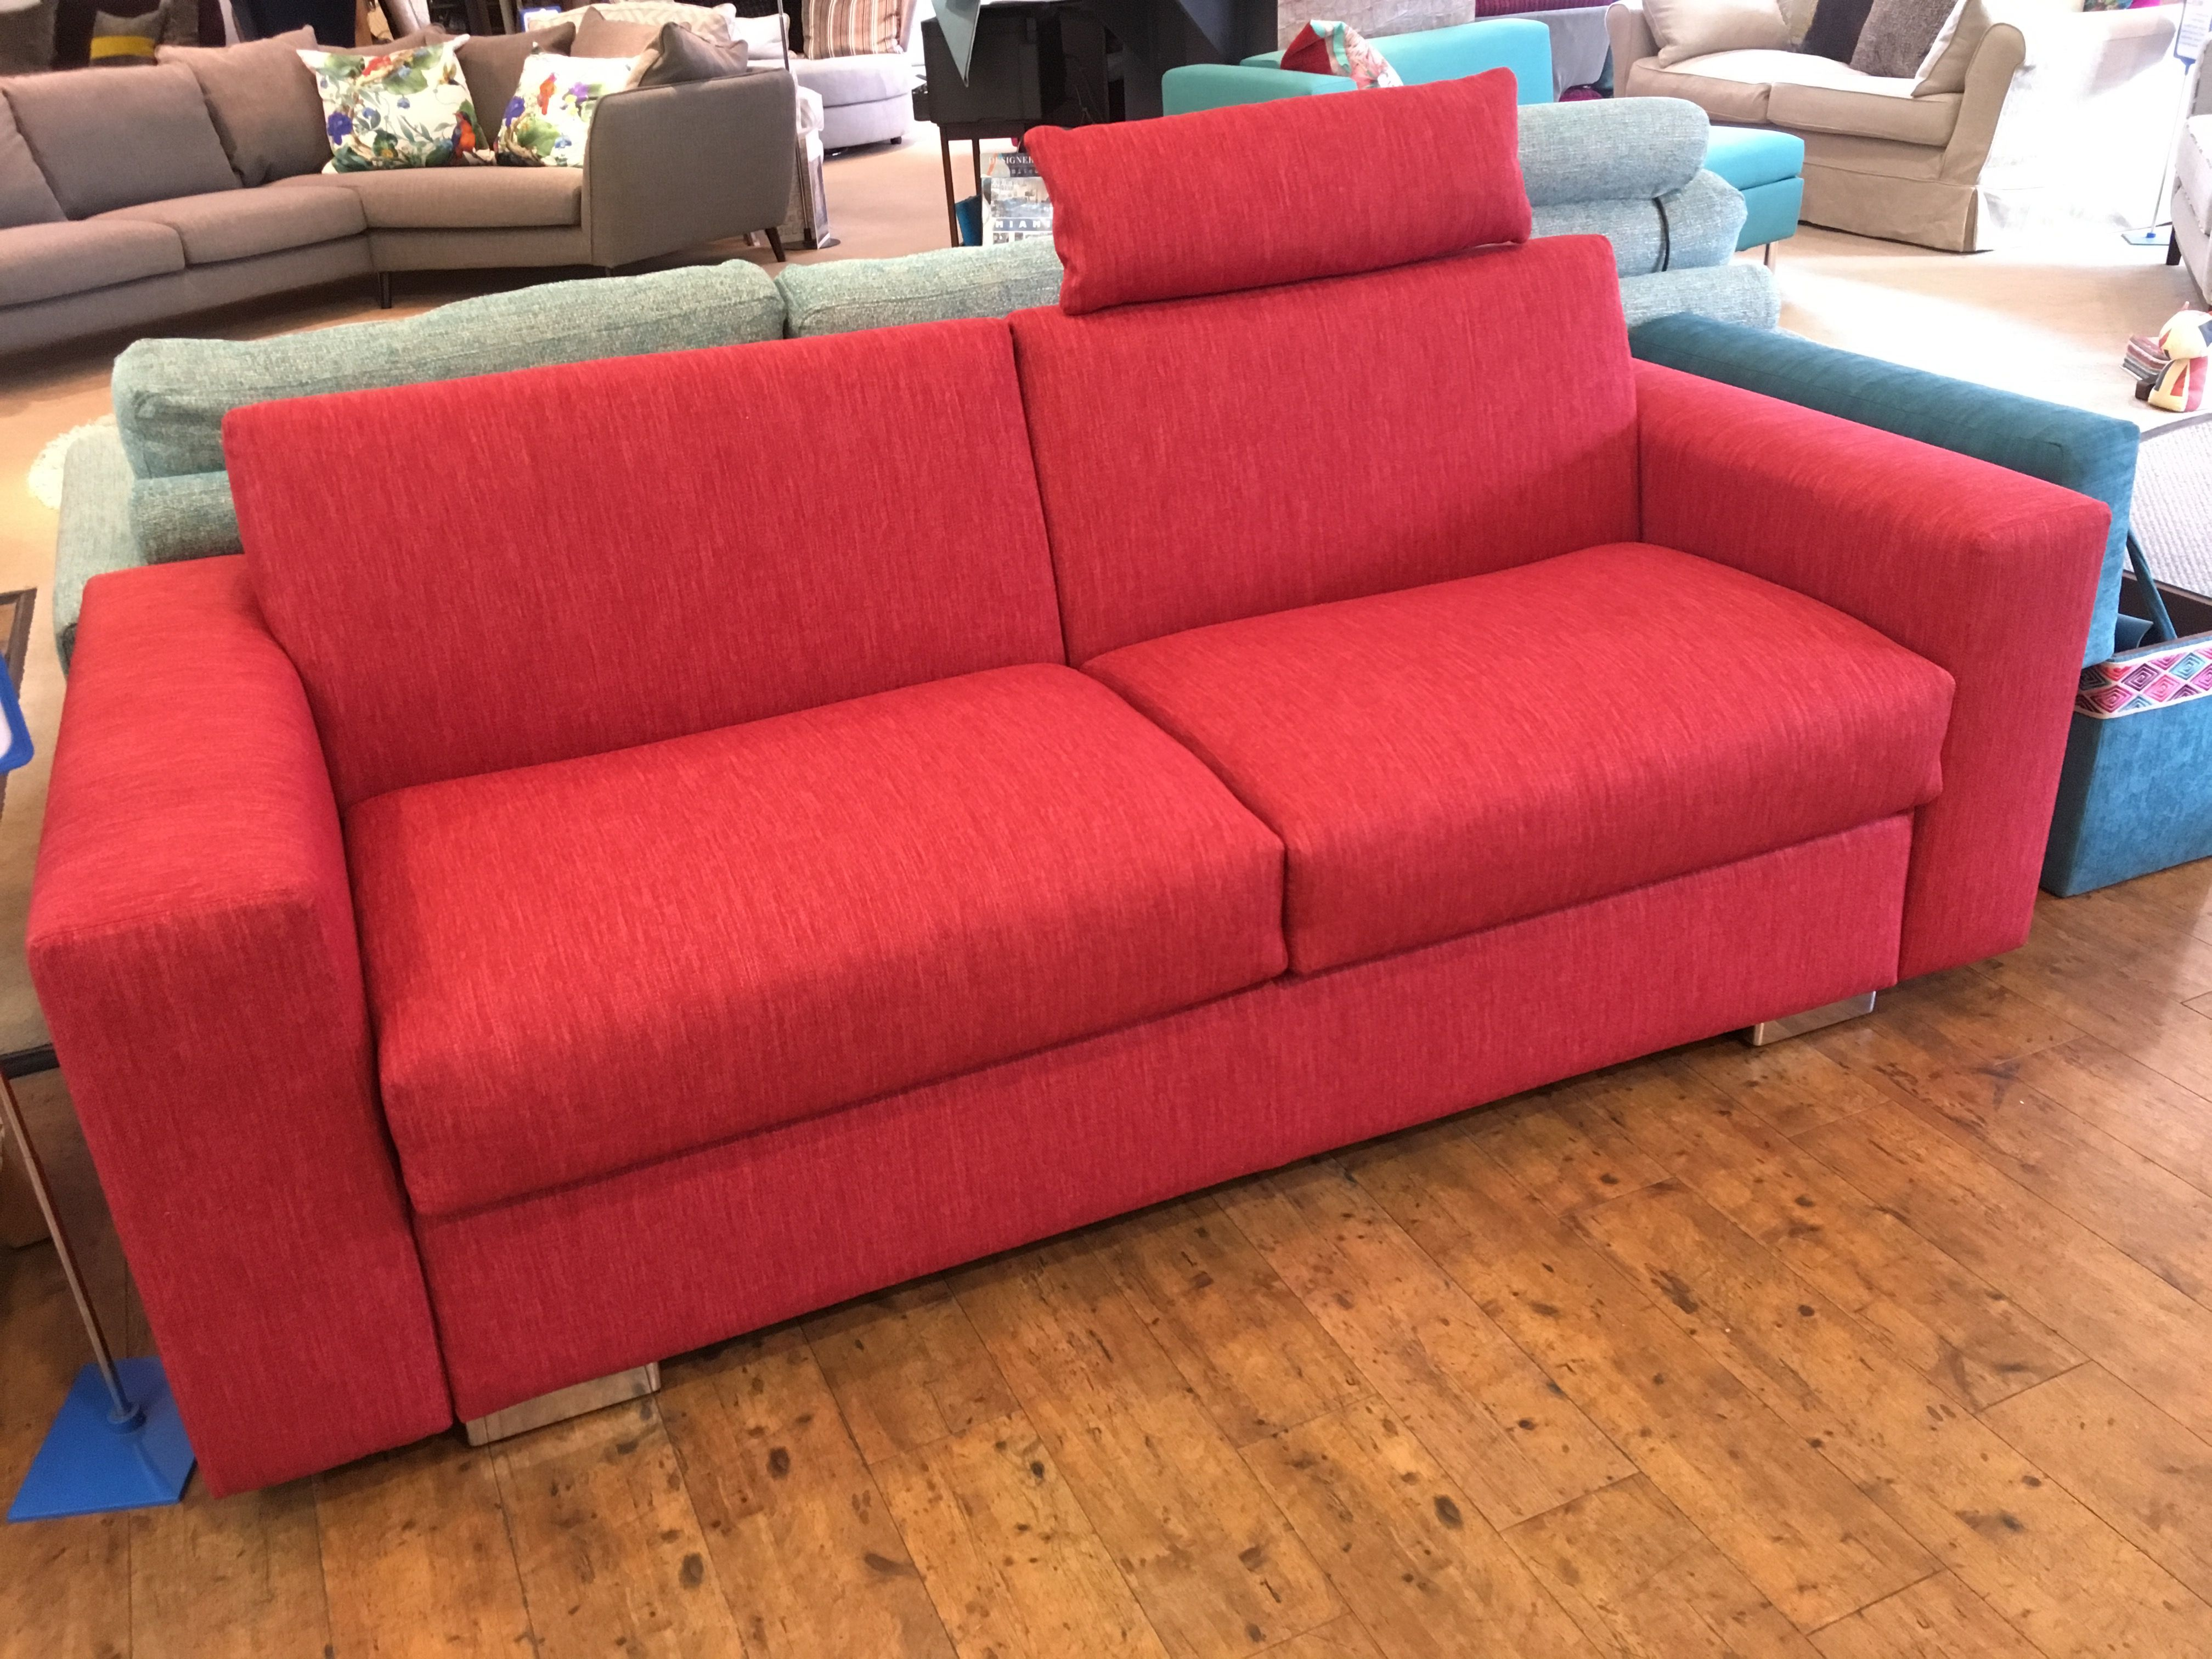 Lario 2 5 Seat Sofa Bed With 20 Cm Arms 204 Cm Wide Displayed In Warwick Fabrics Key Largo Cherry Optional Headrest Sofa Sofa Bed Luxury Sofa Bed